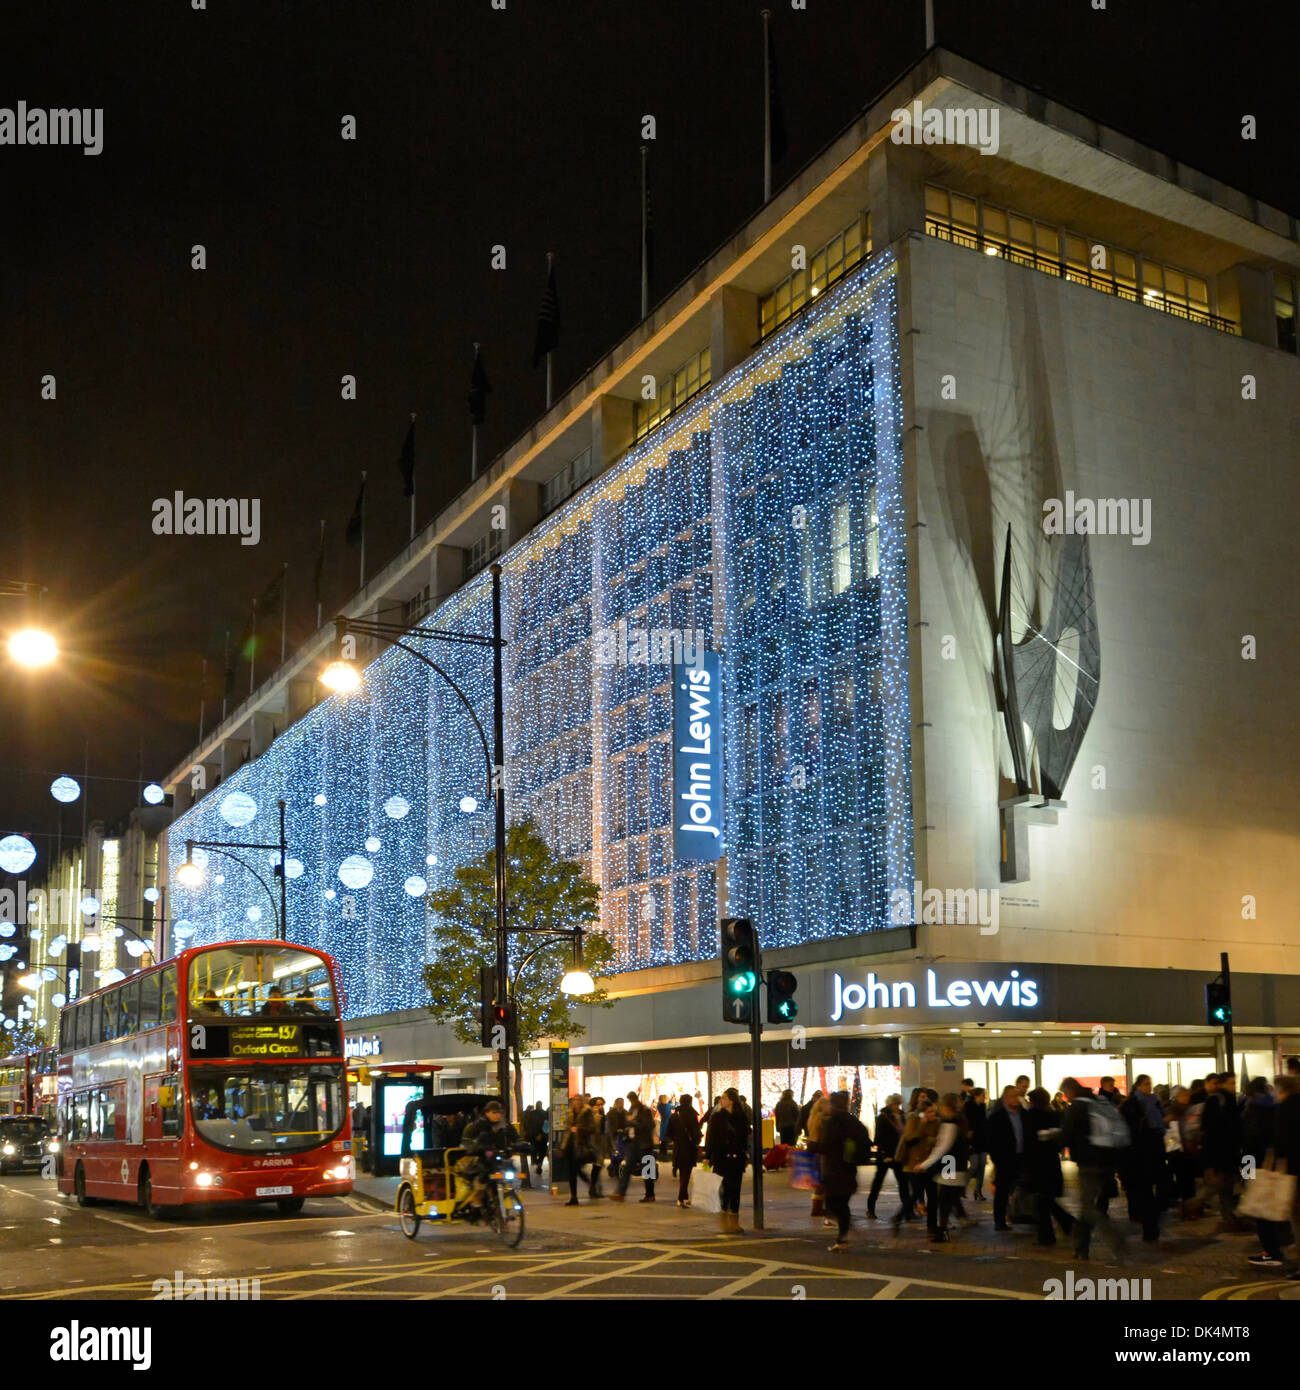 John Lewis department store in Oxford street with Christmas lights ...